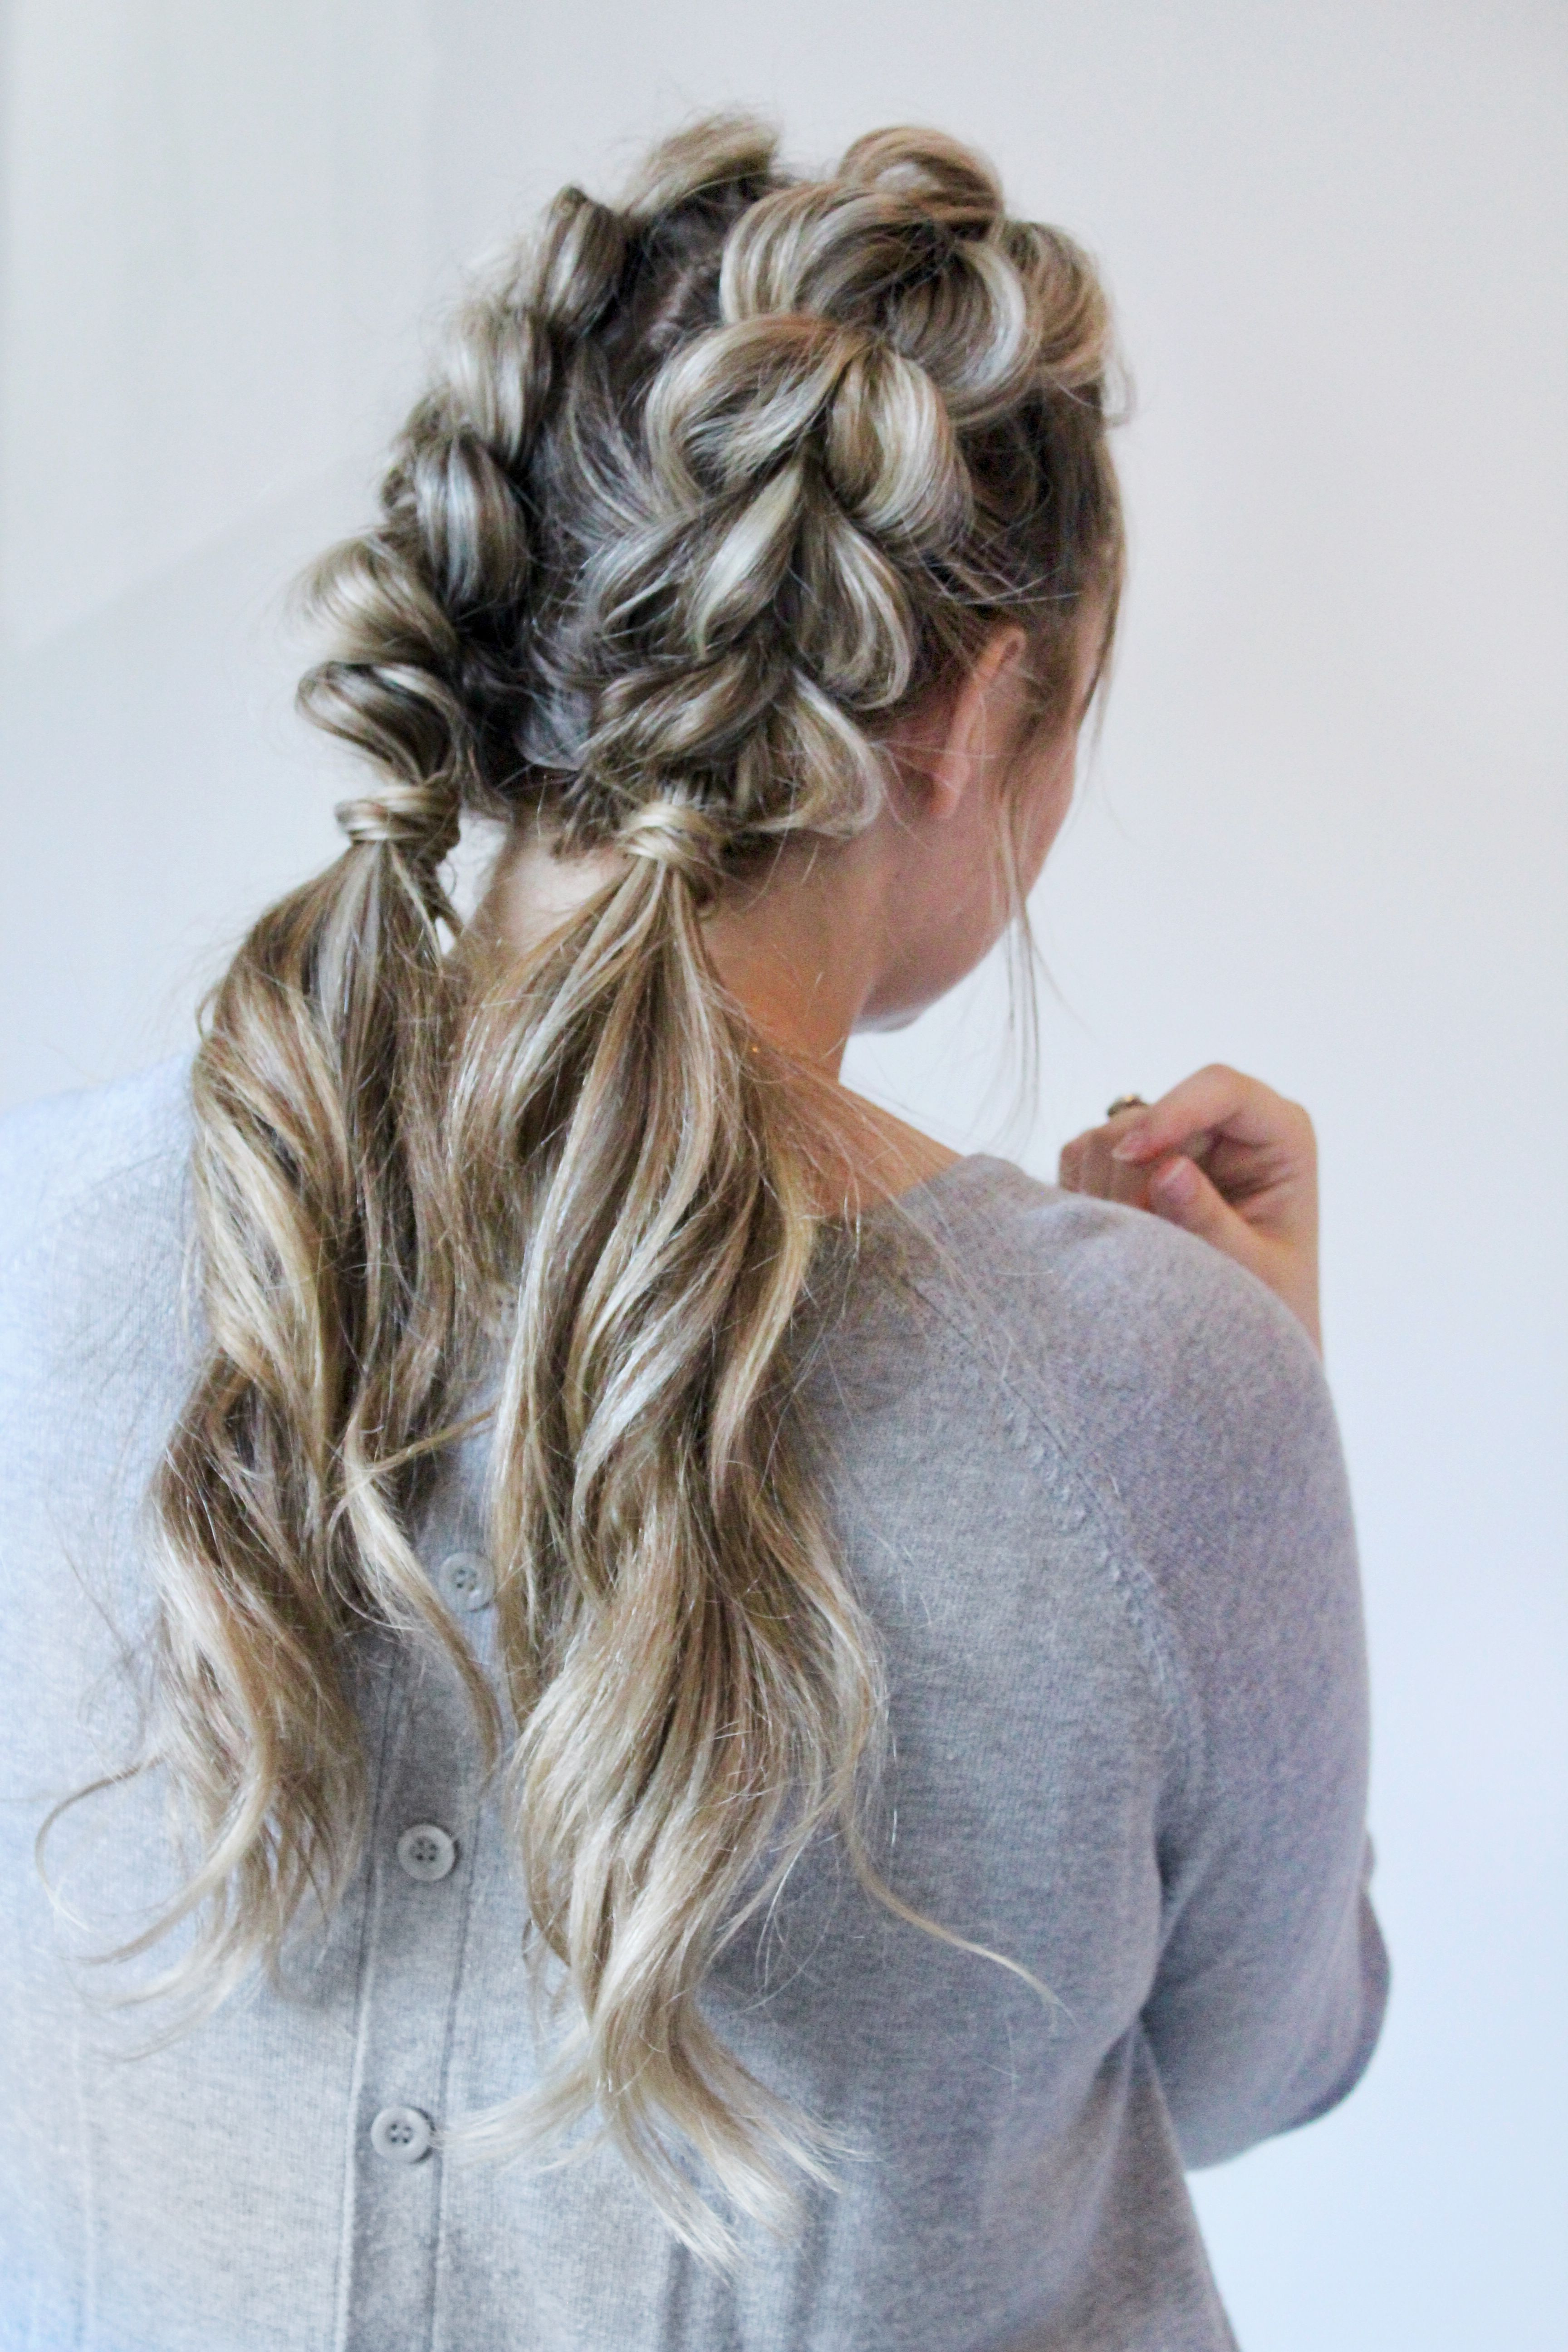 Best And Newest Pull Through Ponytail Updo Hairstyles Throughout Jumbo Pull Through Braid Pigtails Tutorial (View 8 of 20)